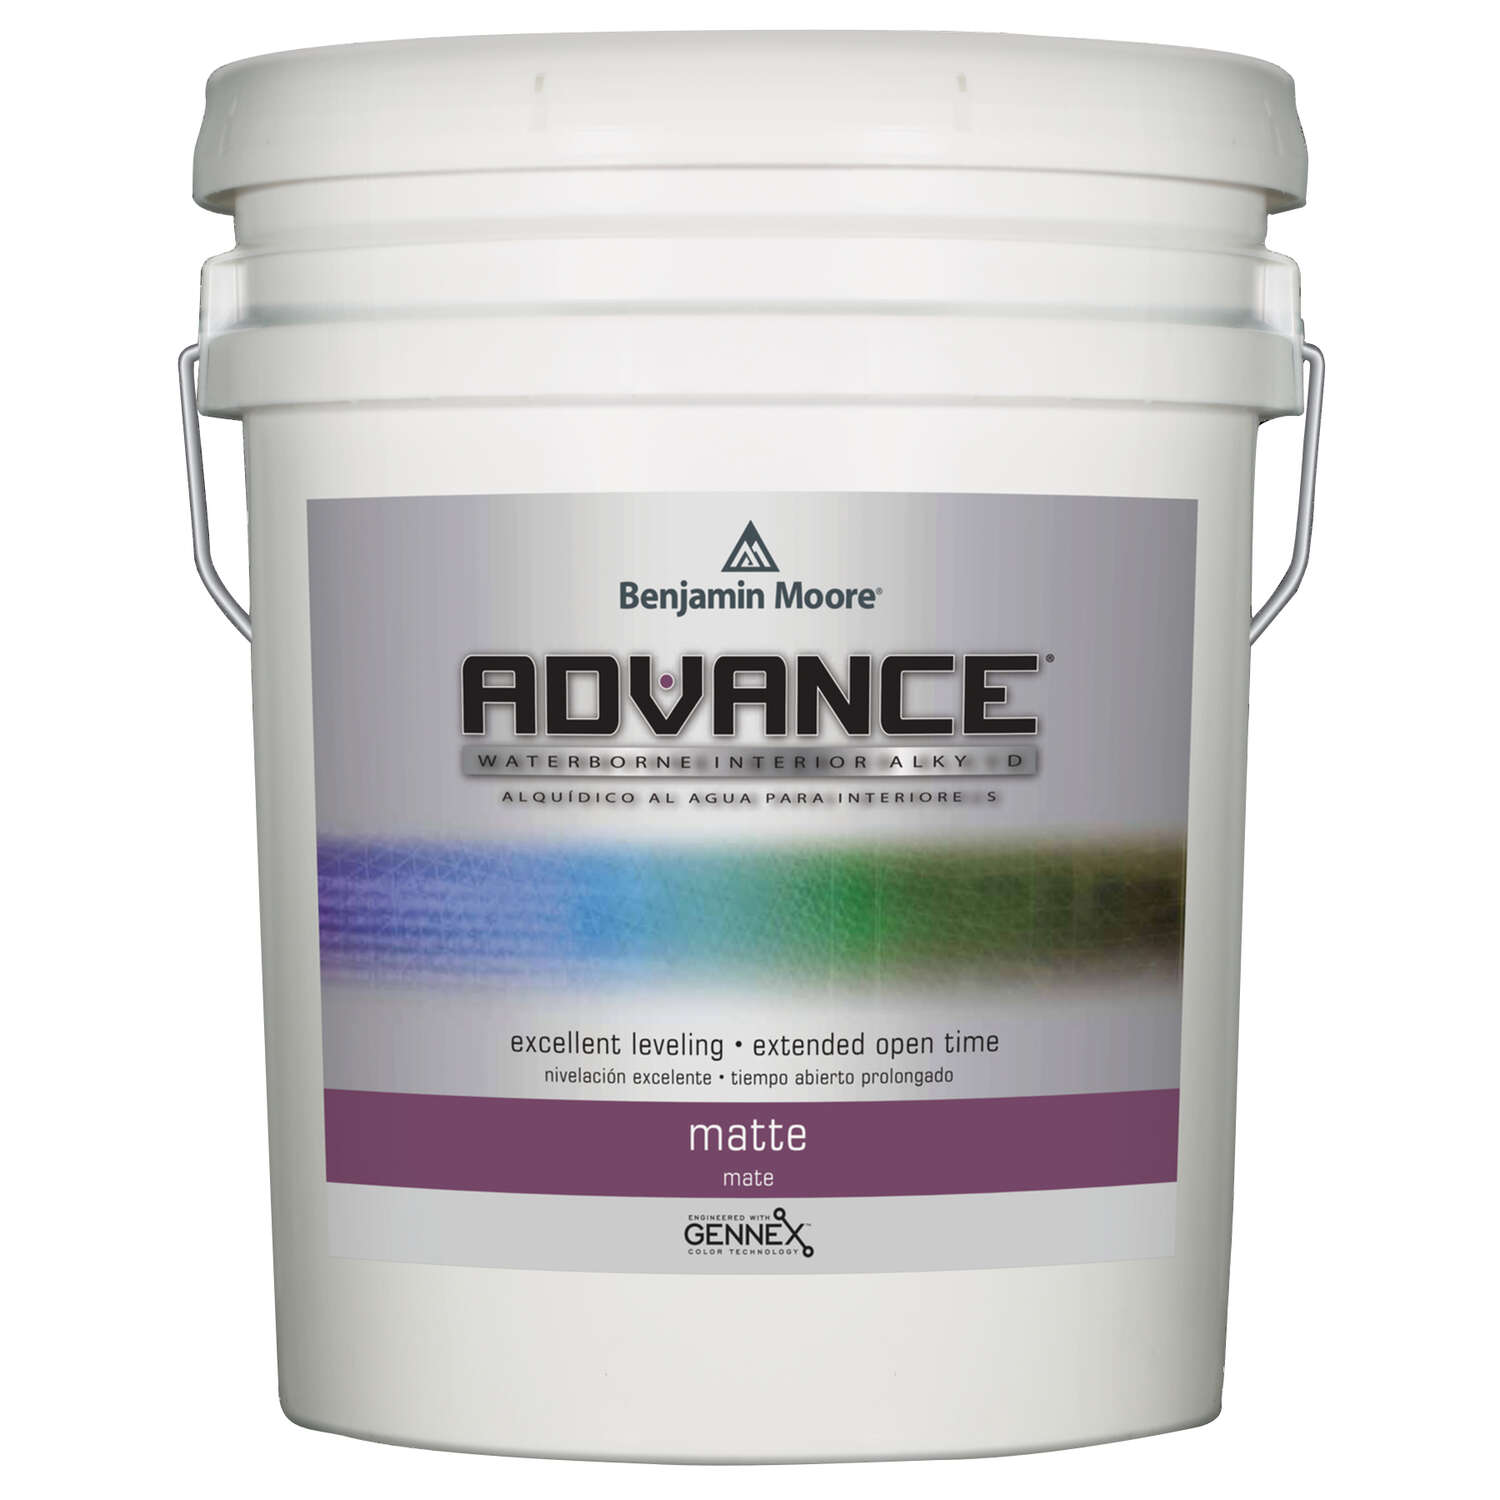 Benjamin Moore  Advance  Matte  Base 1  Paint  Interior  5 gal.